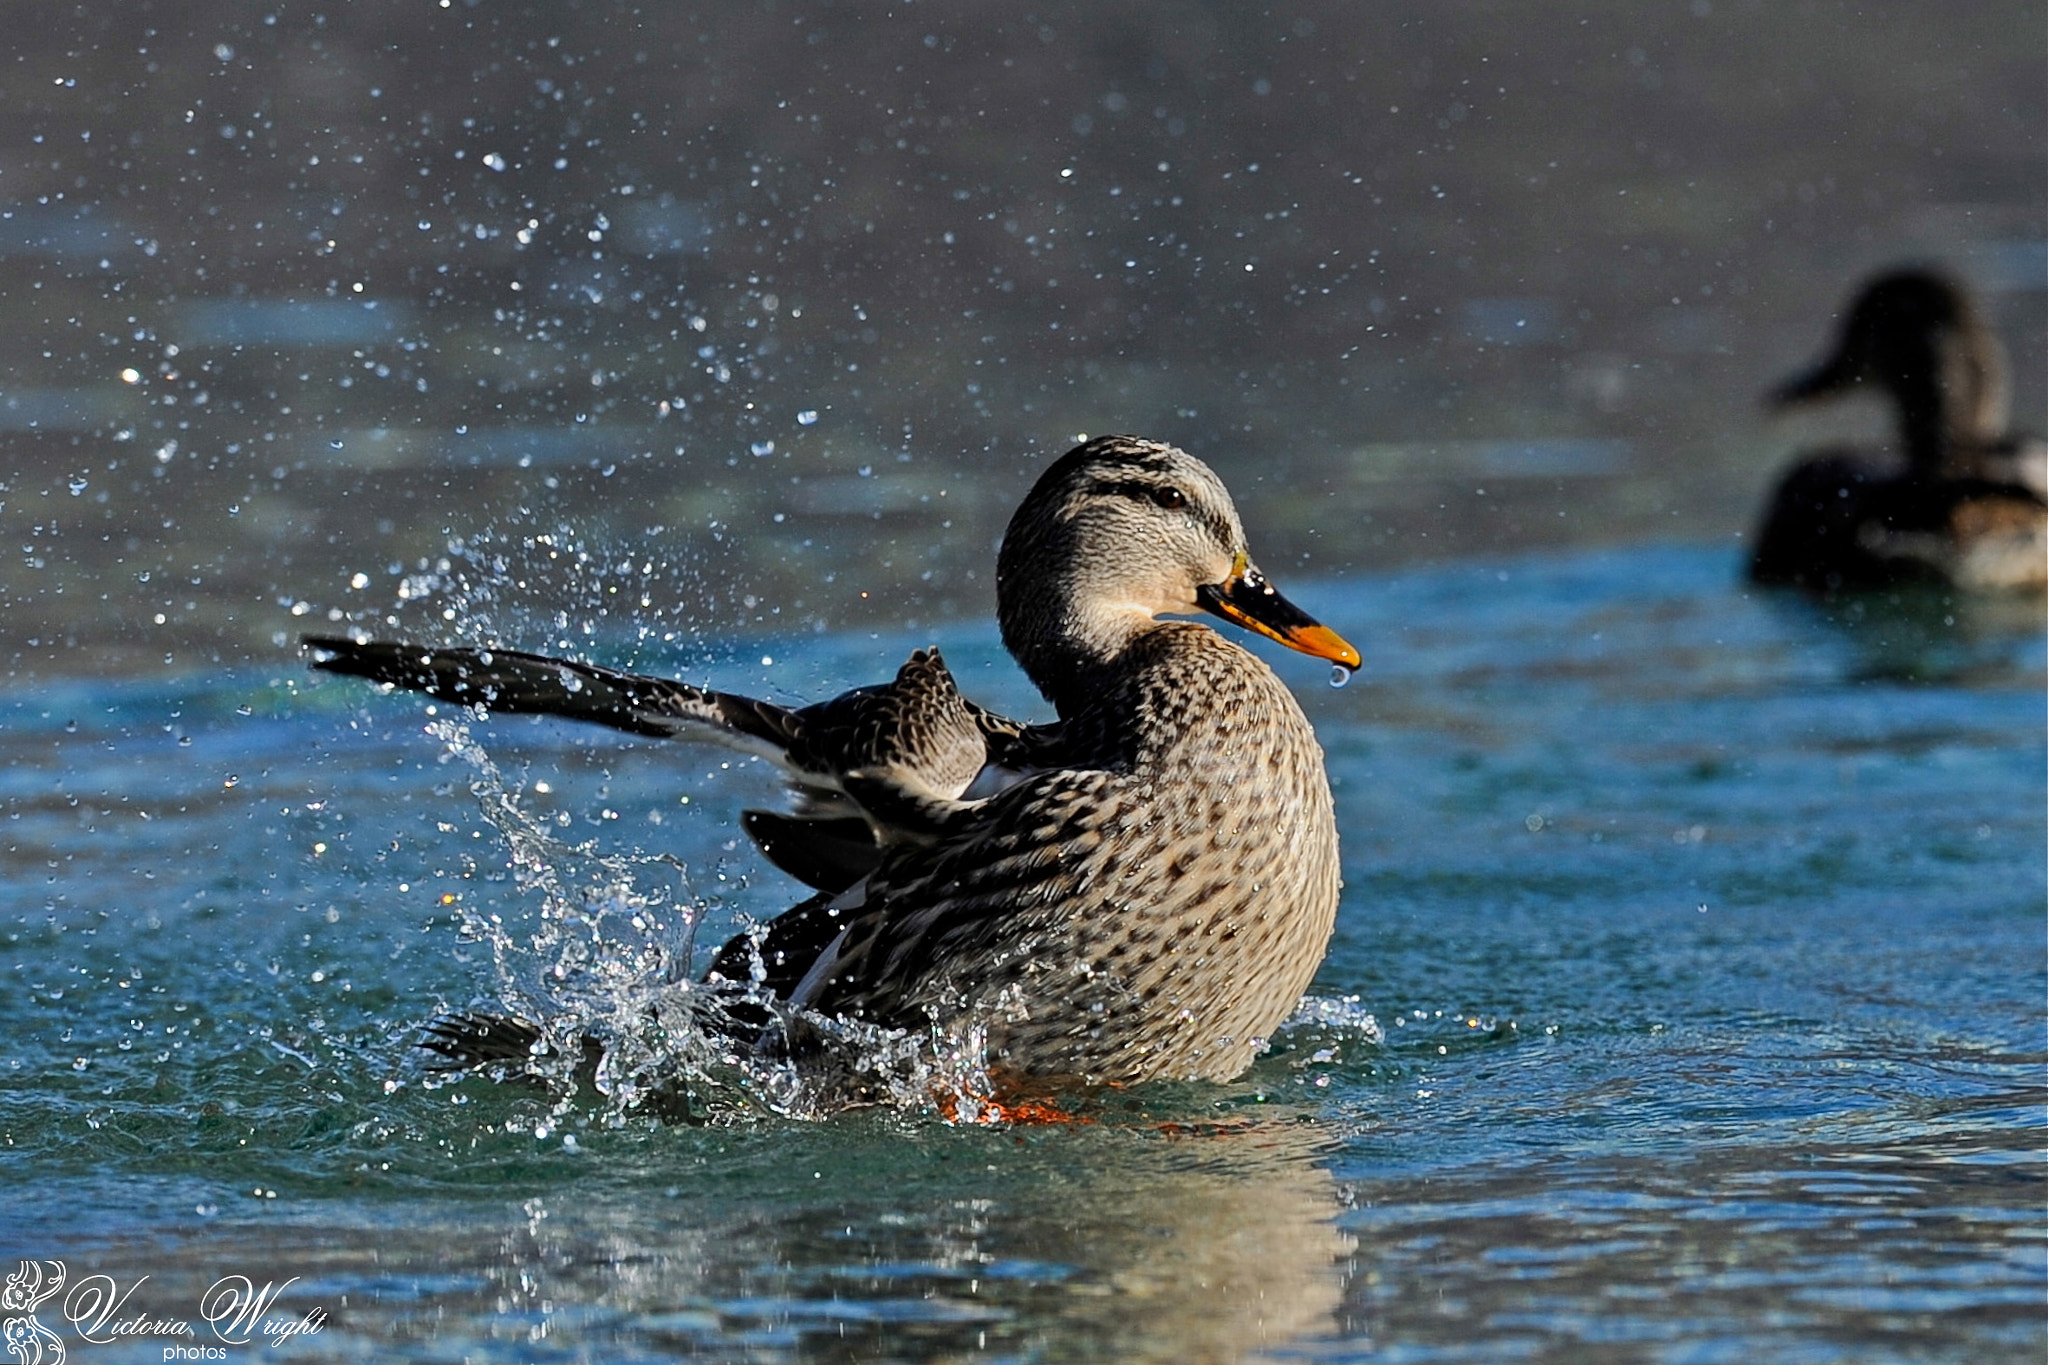 """Photograph """"Splash"""" by Victoria Wright on 500px"""